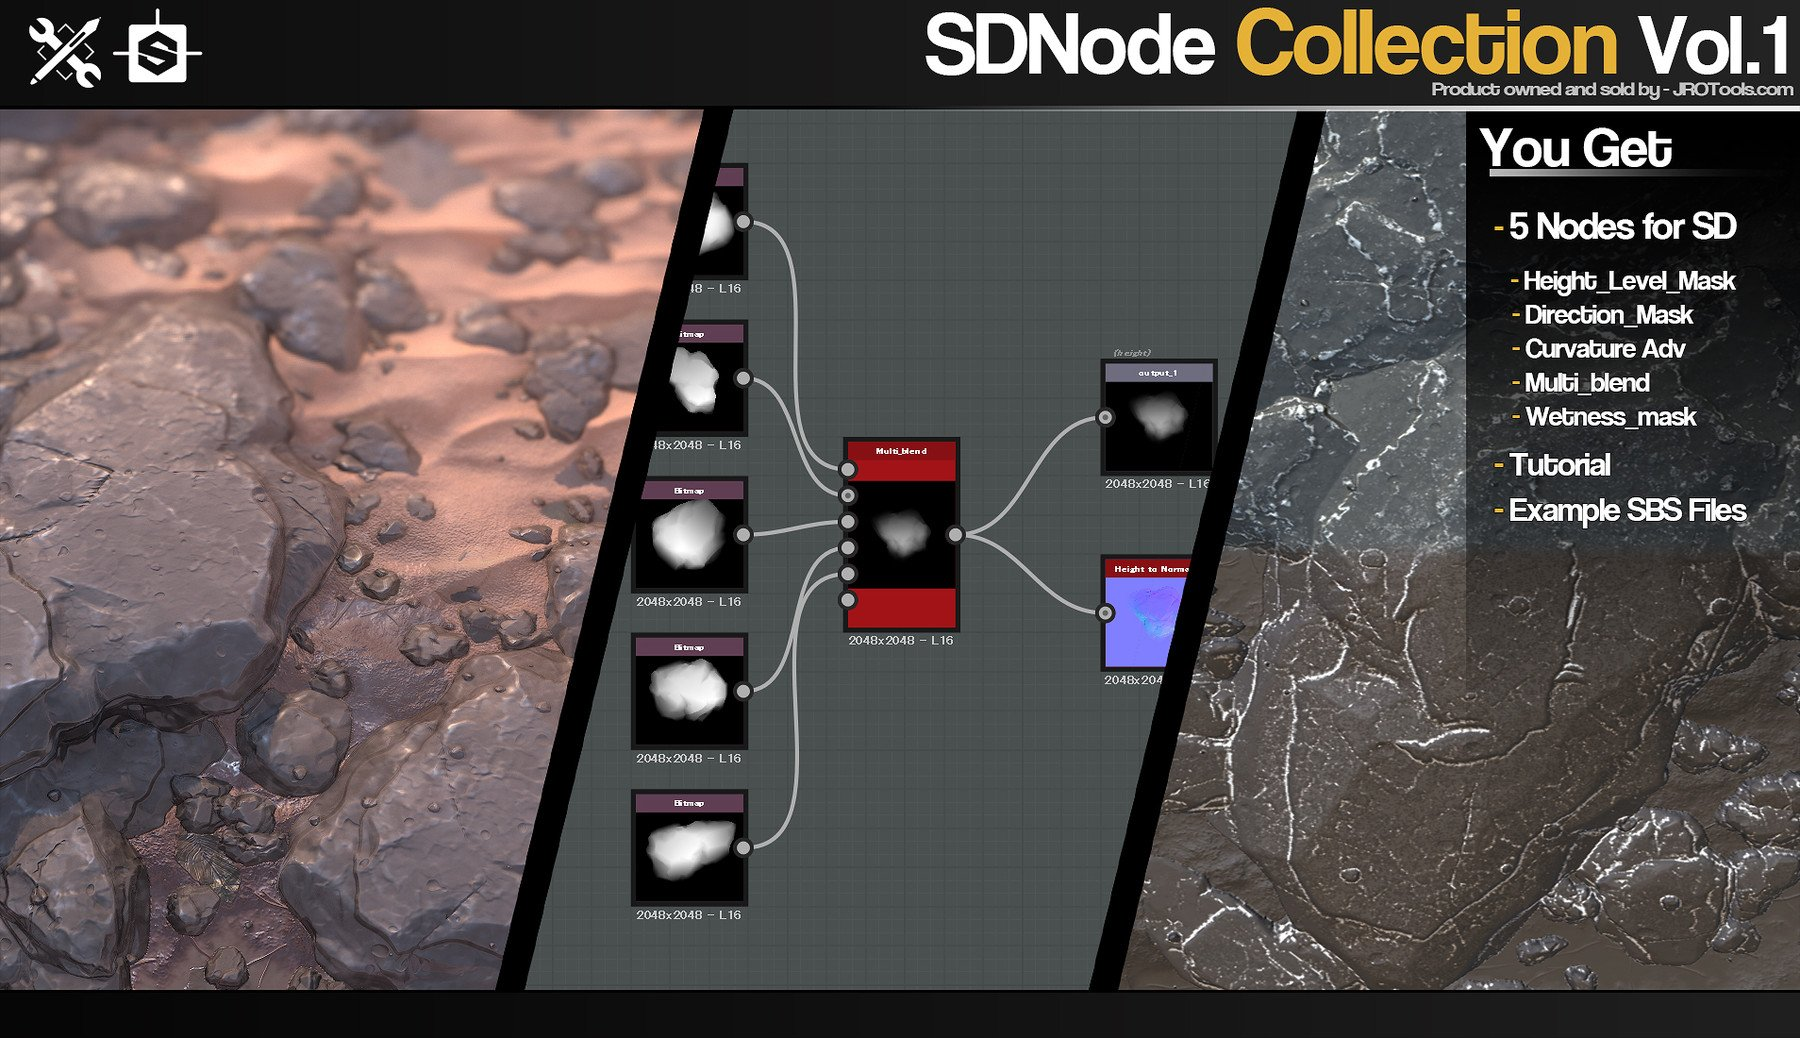 Sdnode collection main